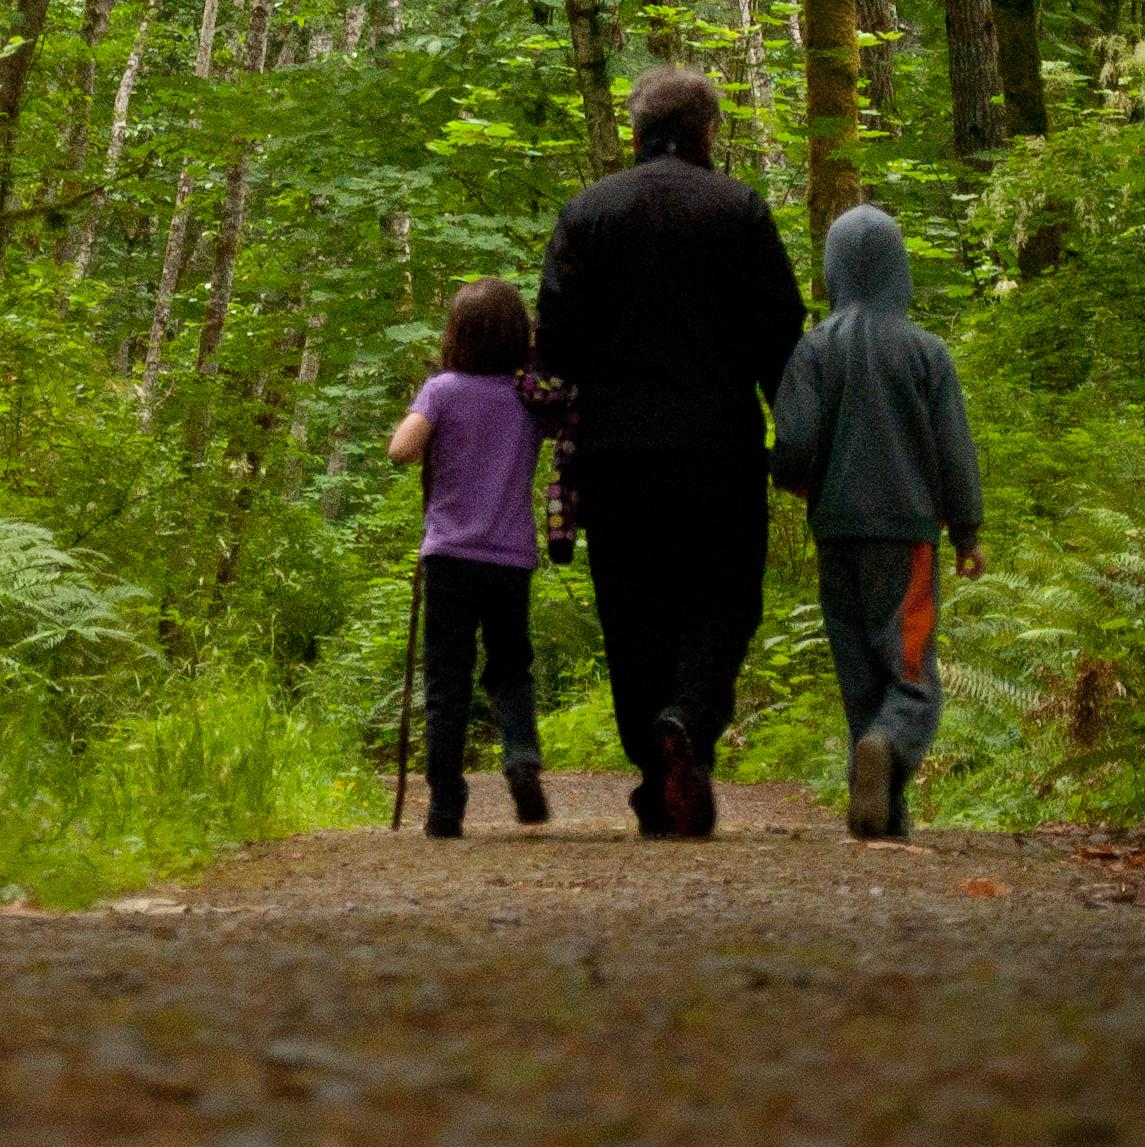 A father and two children walking through the woods.